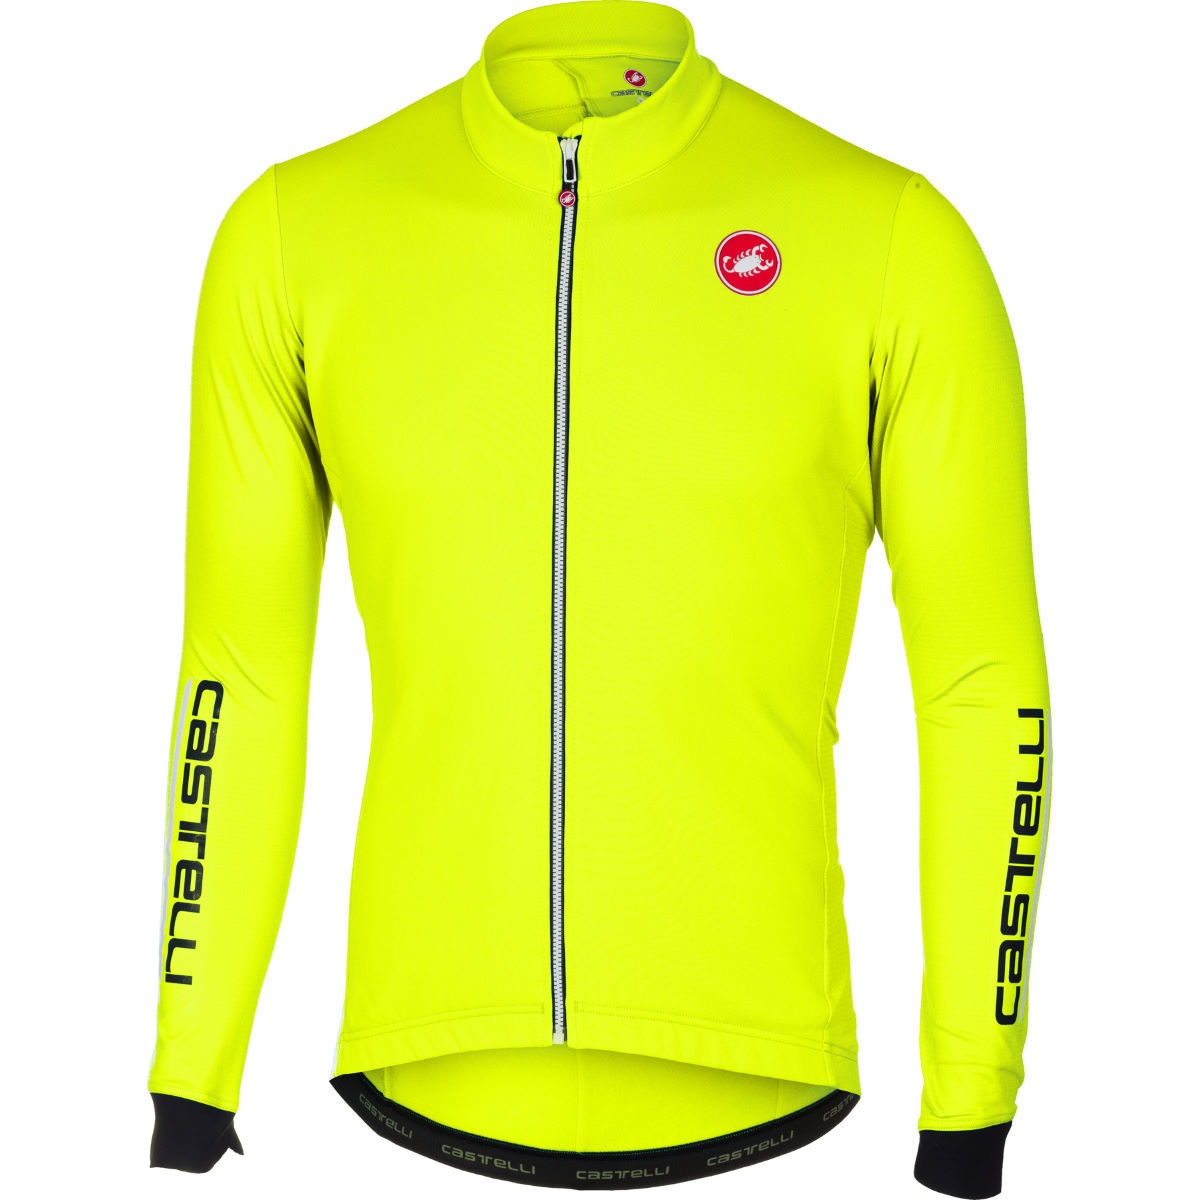 Maillot Castelli Puro 2 (manches longues) - M Yellow Fluo